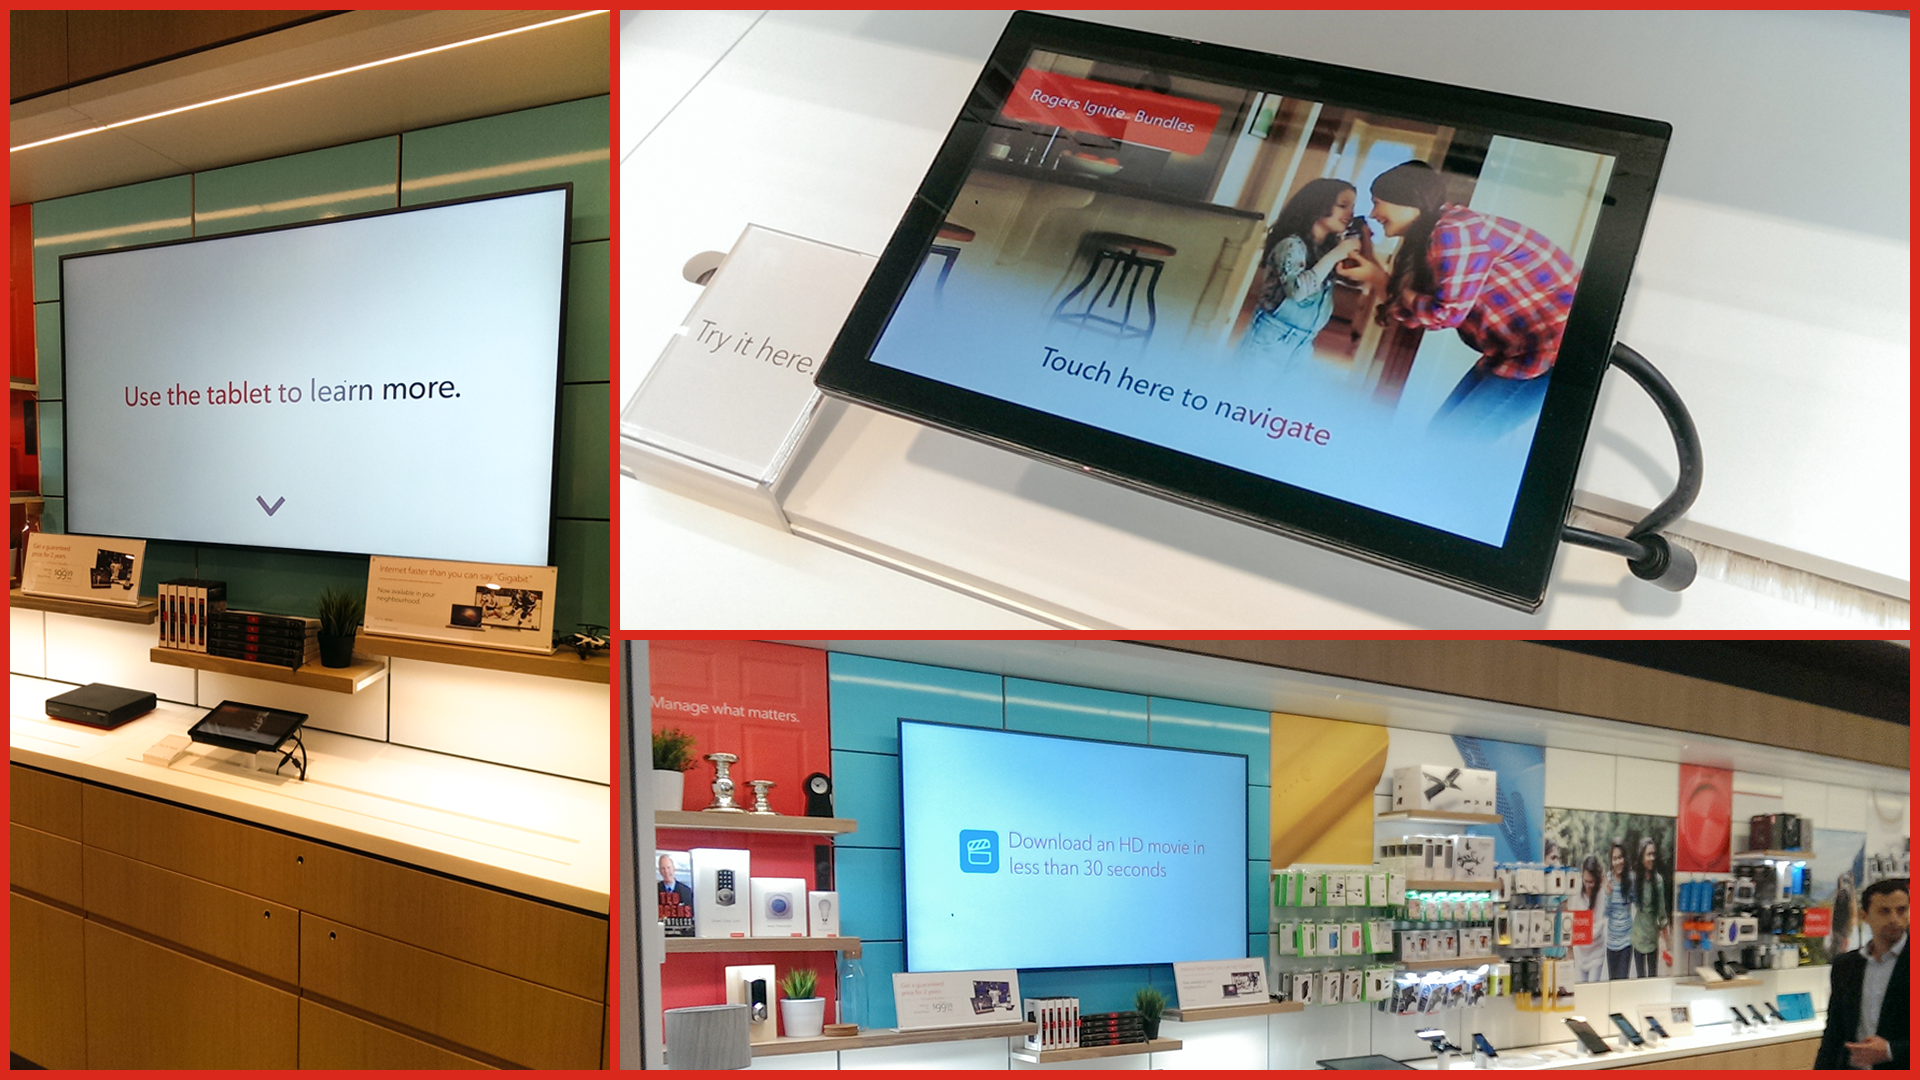 Rogers digital signage system and touch interactive system educates customers.